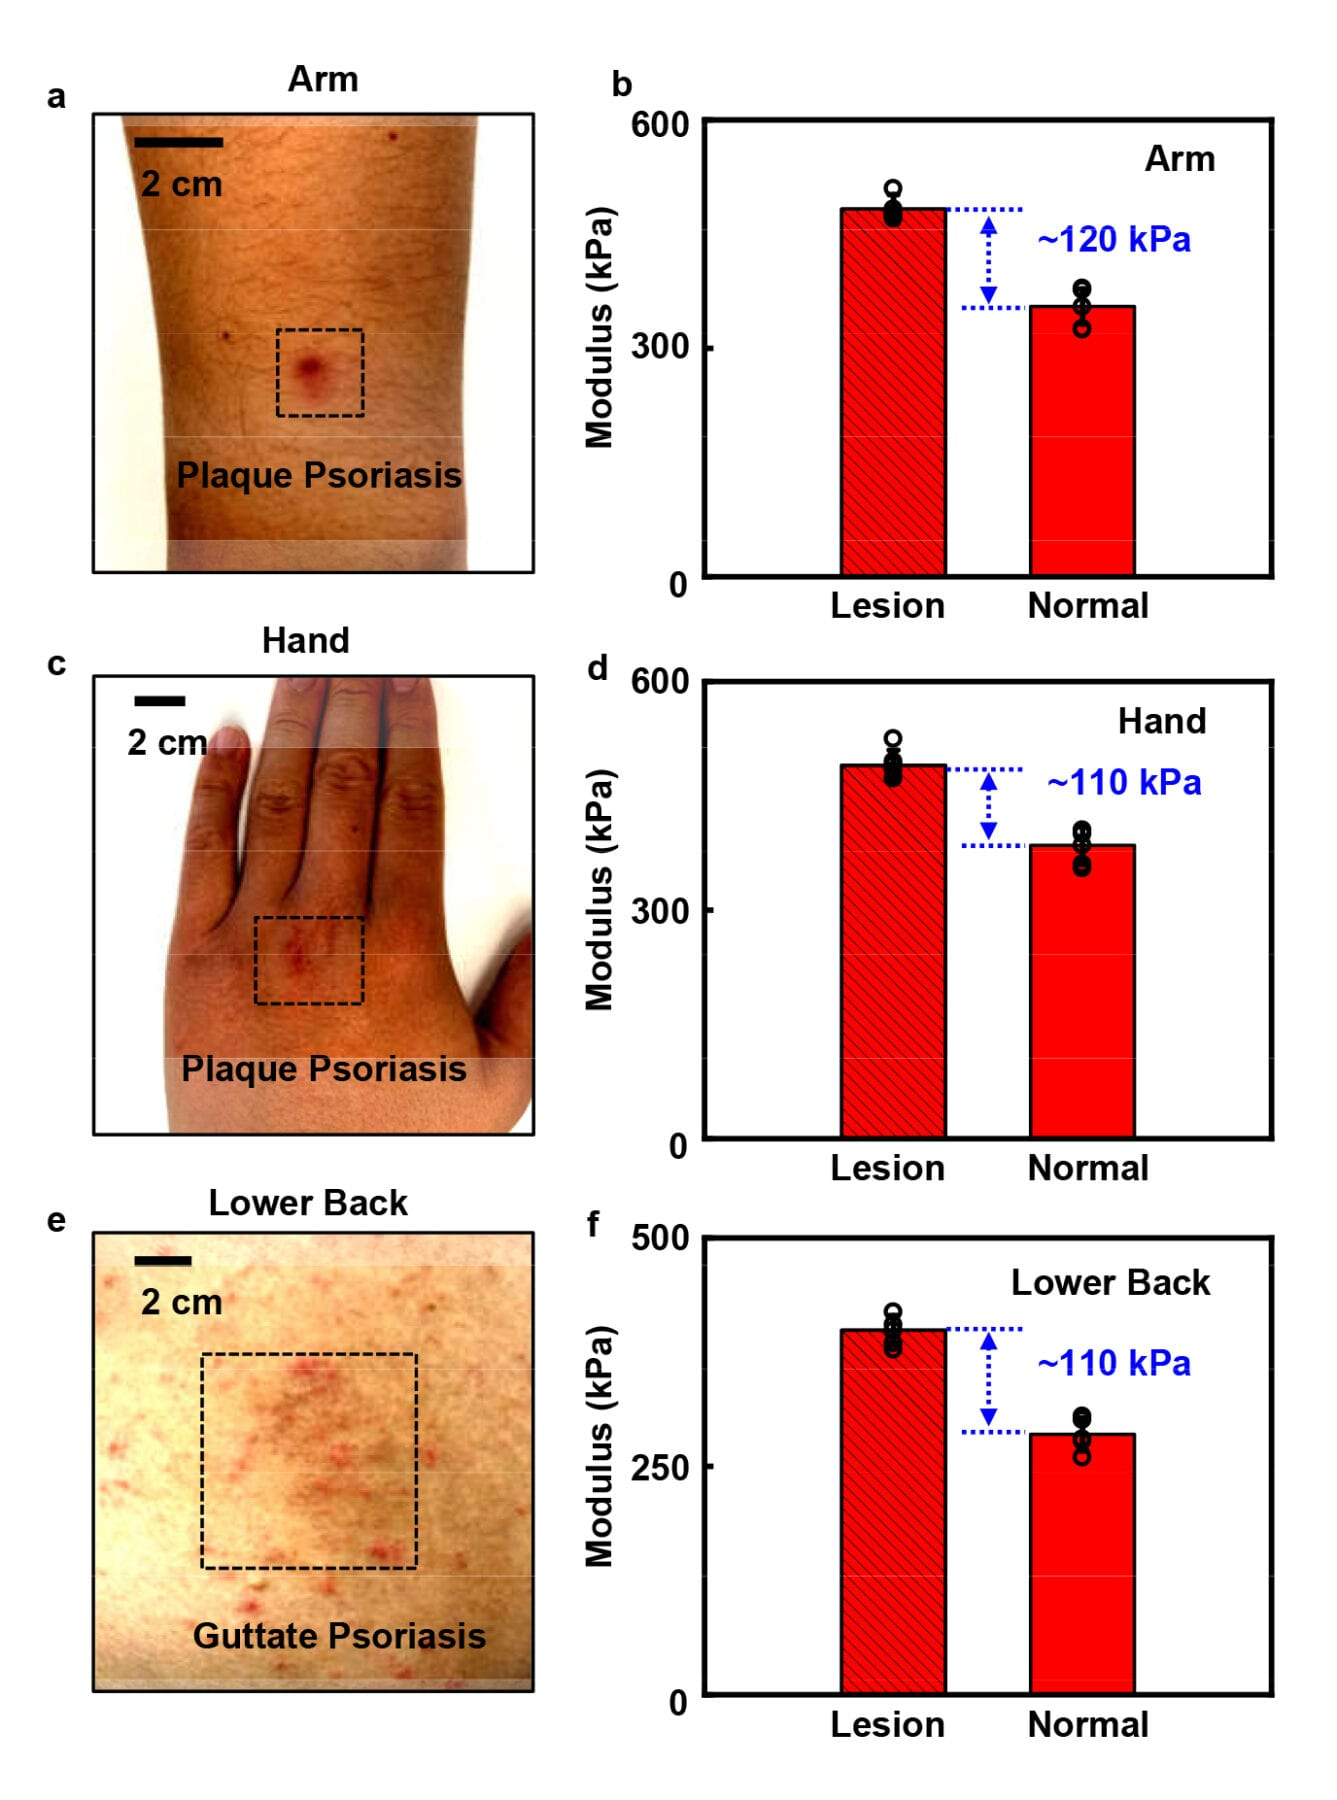 The team applies the device on the skin lesions associated with psoriasis on the arm (a), hand (c), lower back (e) and the unaffected skin. Figure b, d and f show the results of stiffness variations between unaffected skin and lesion regions. (Photo source: Song, E., Xie, Z., Bai, W. et al. / DOI number: 10.1038/s41551-021-00723-y)